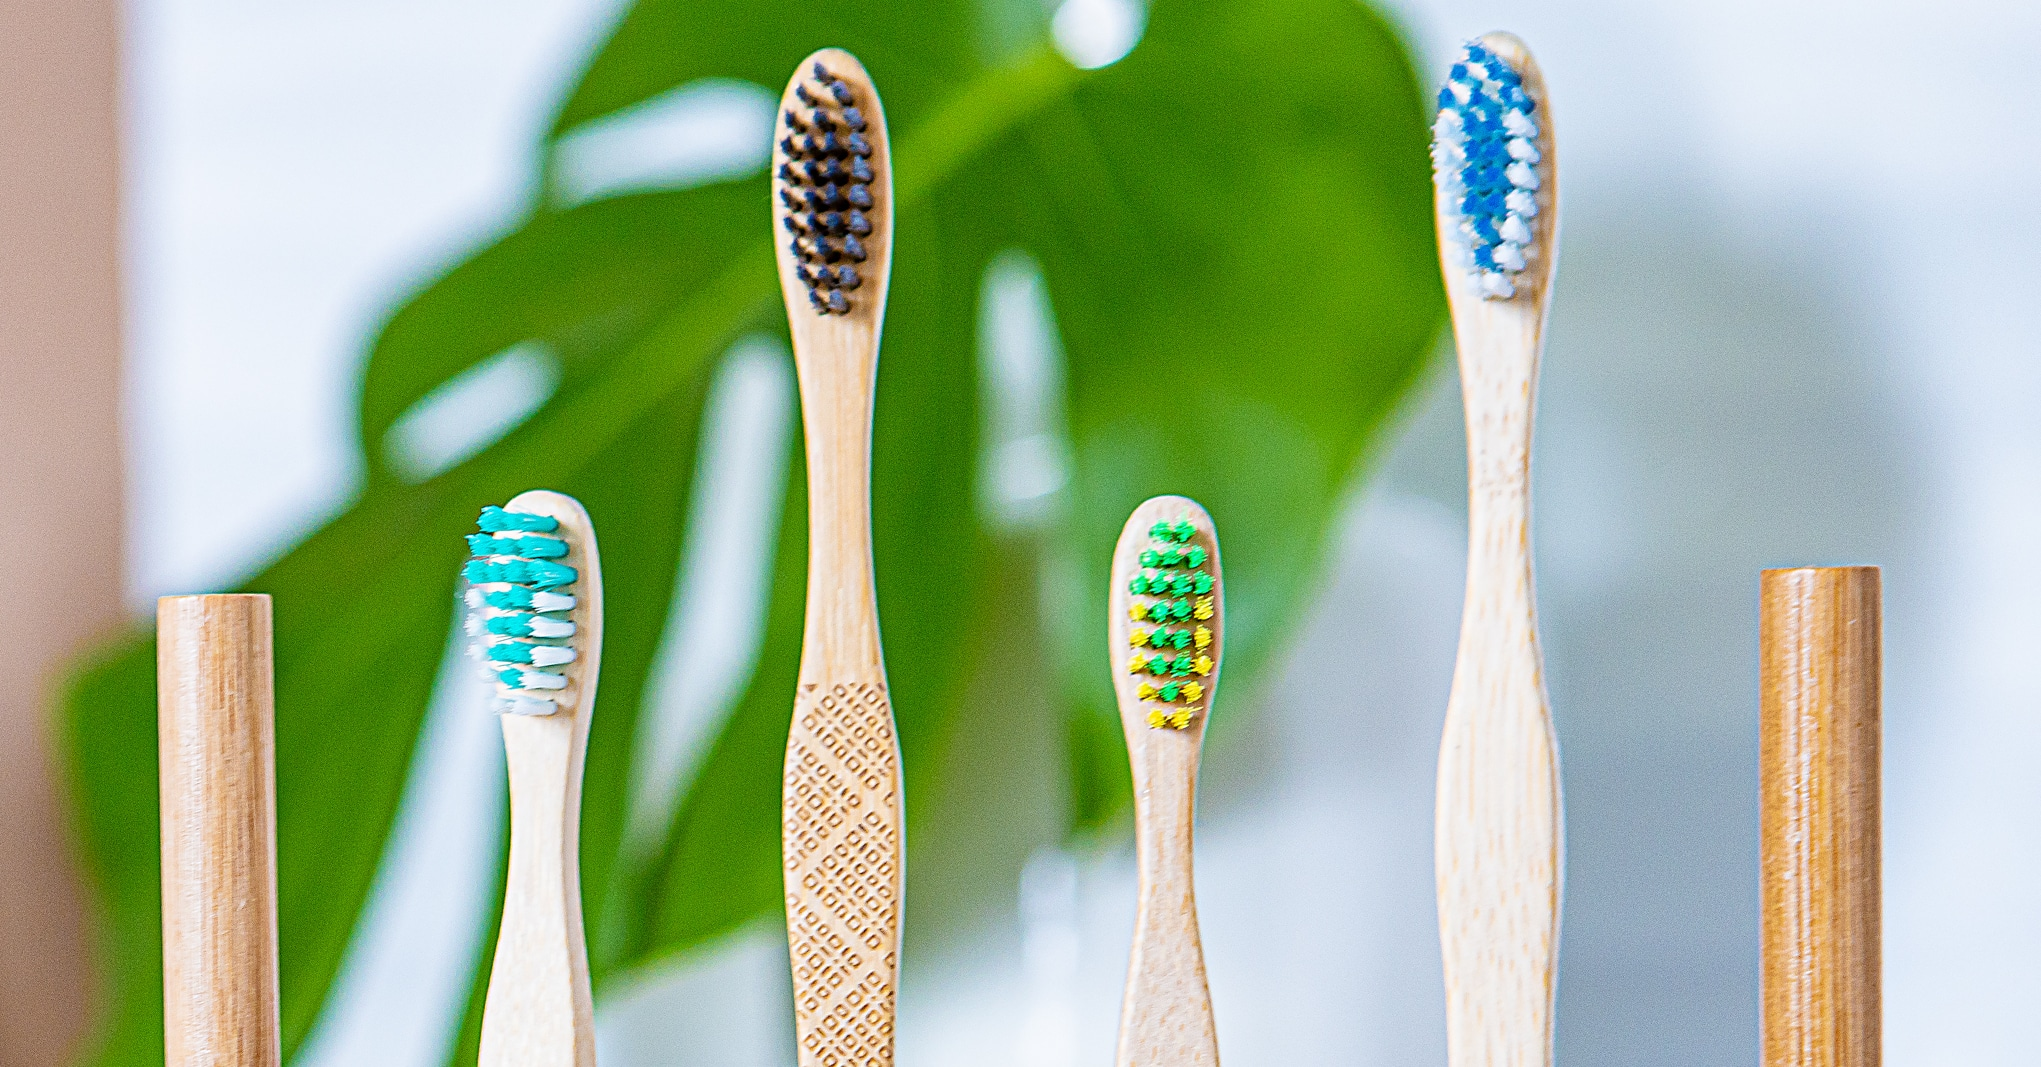 How Often Should You Change Your Toothbrush?